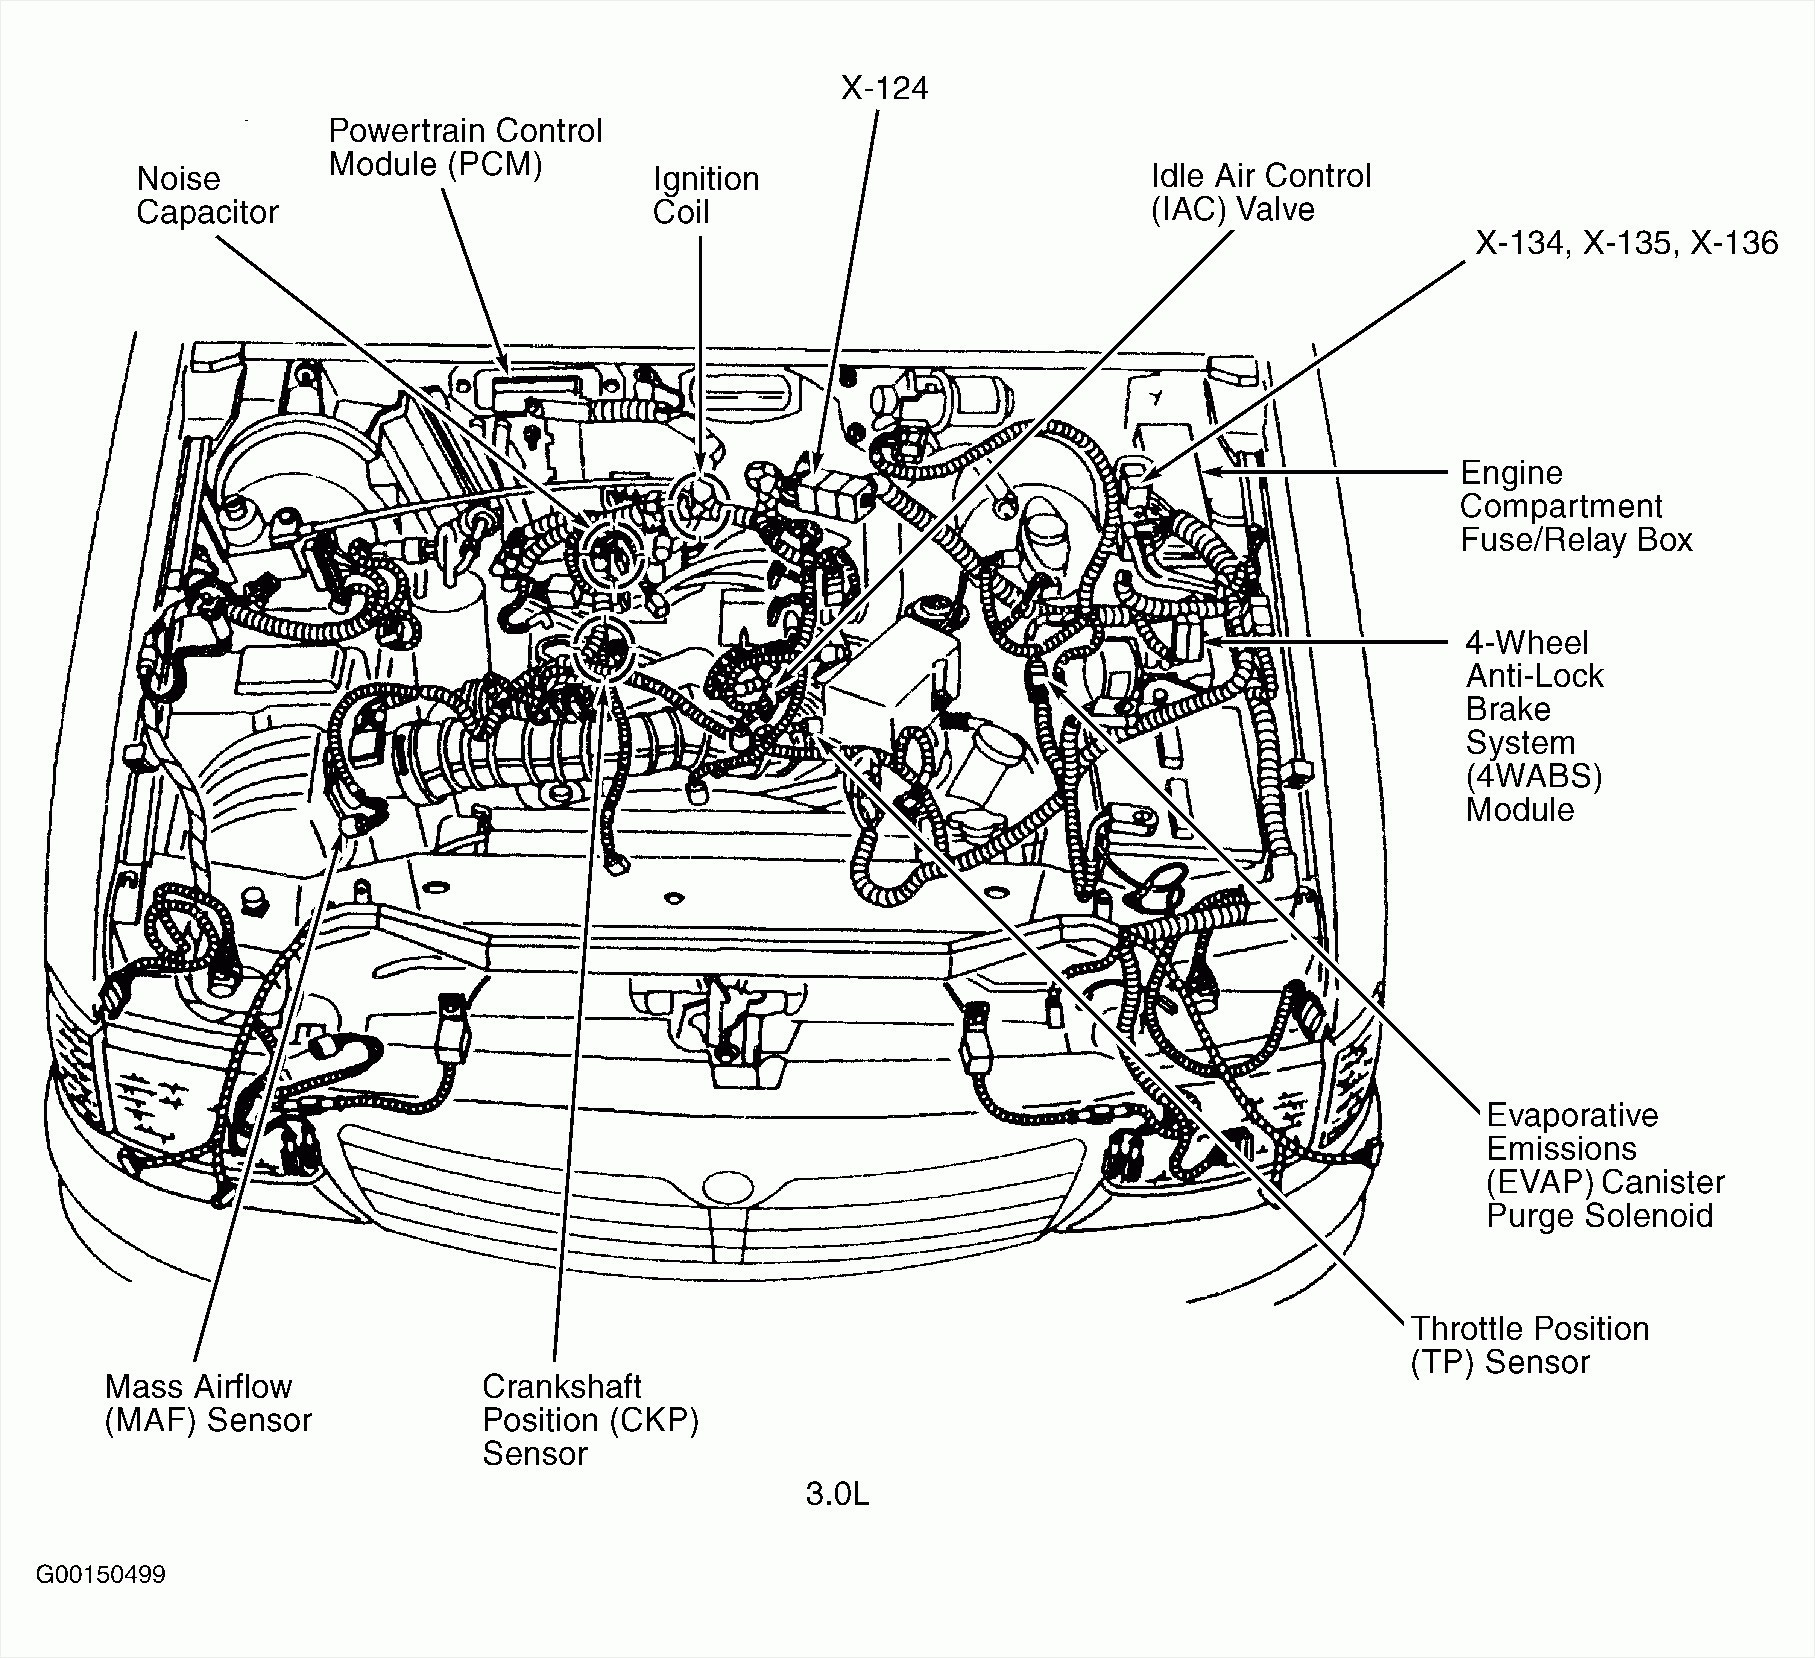 1996 ford Windstar Engine Diagram 1995 ford Windstar Engine Diagram Wiring Diagram Options